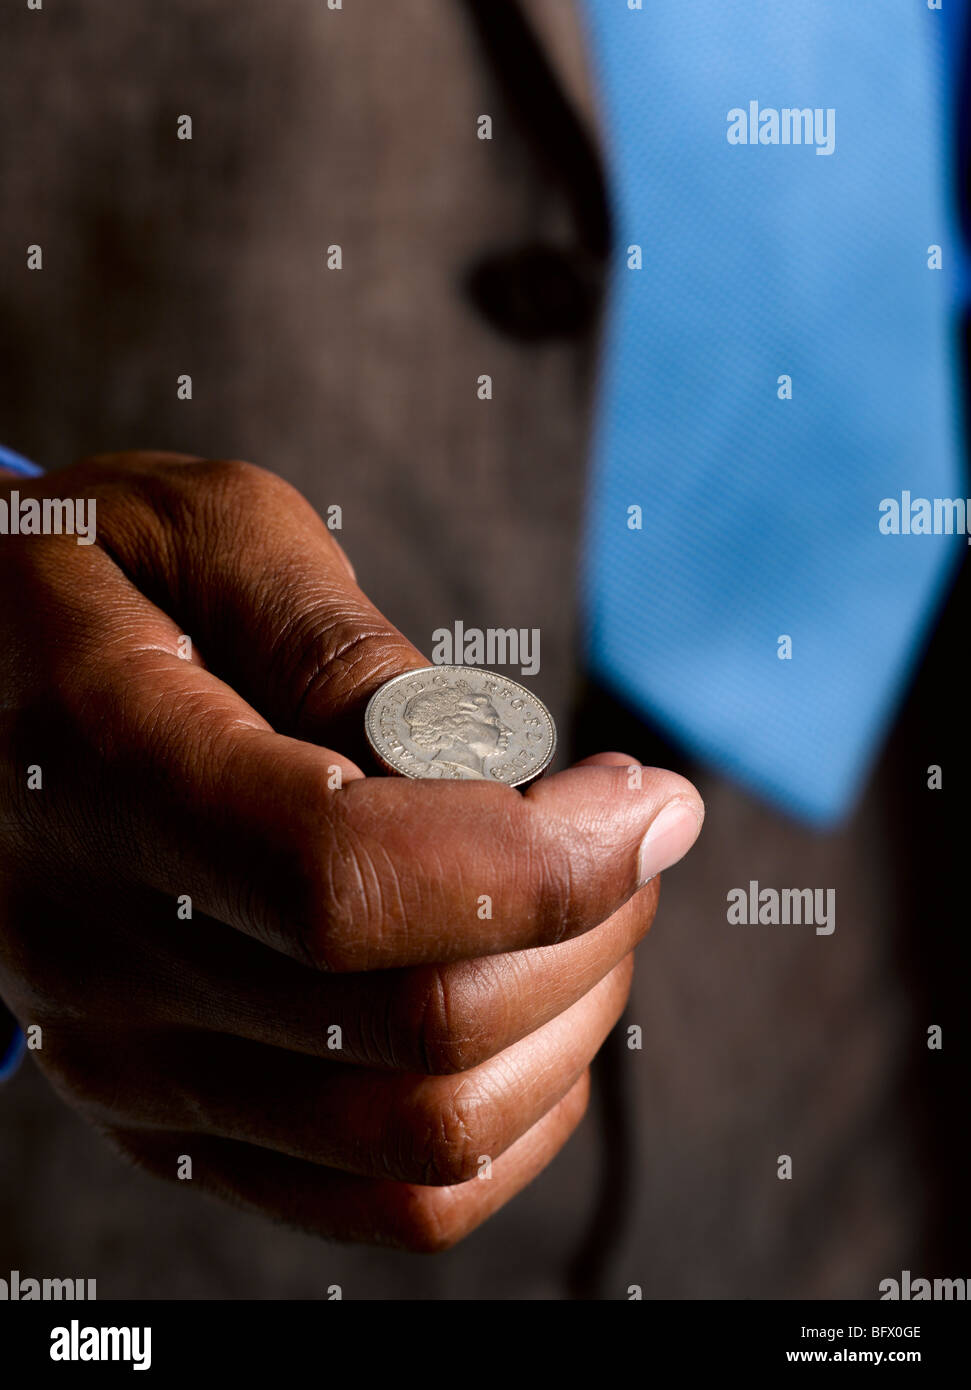 Business man ready to flip sterling coin - Stock Image